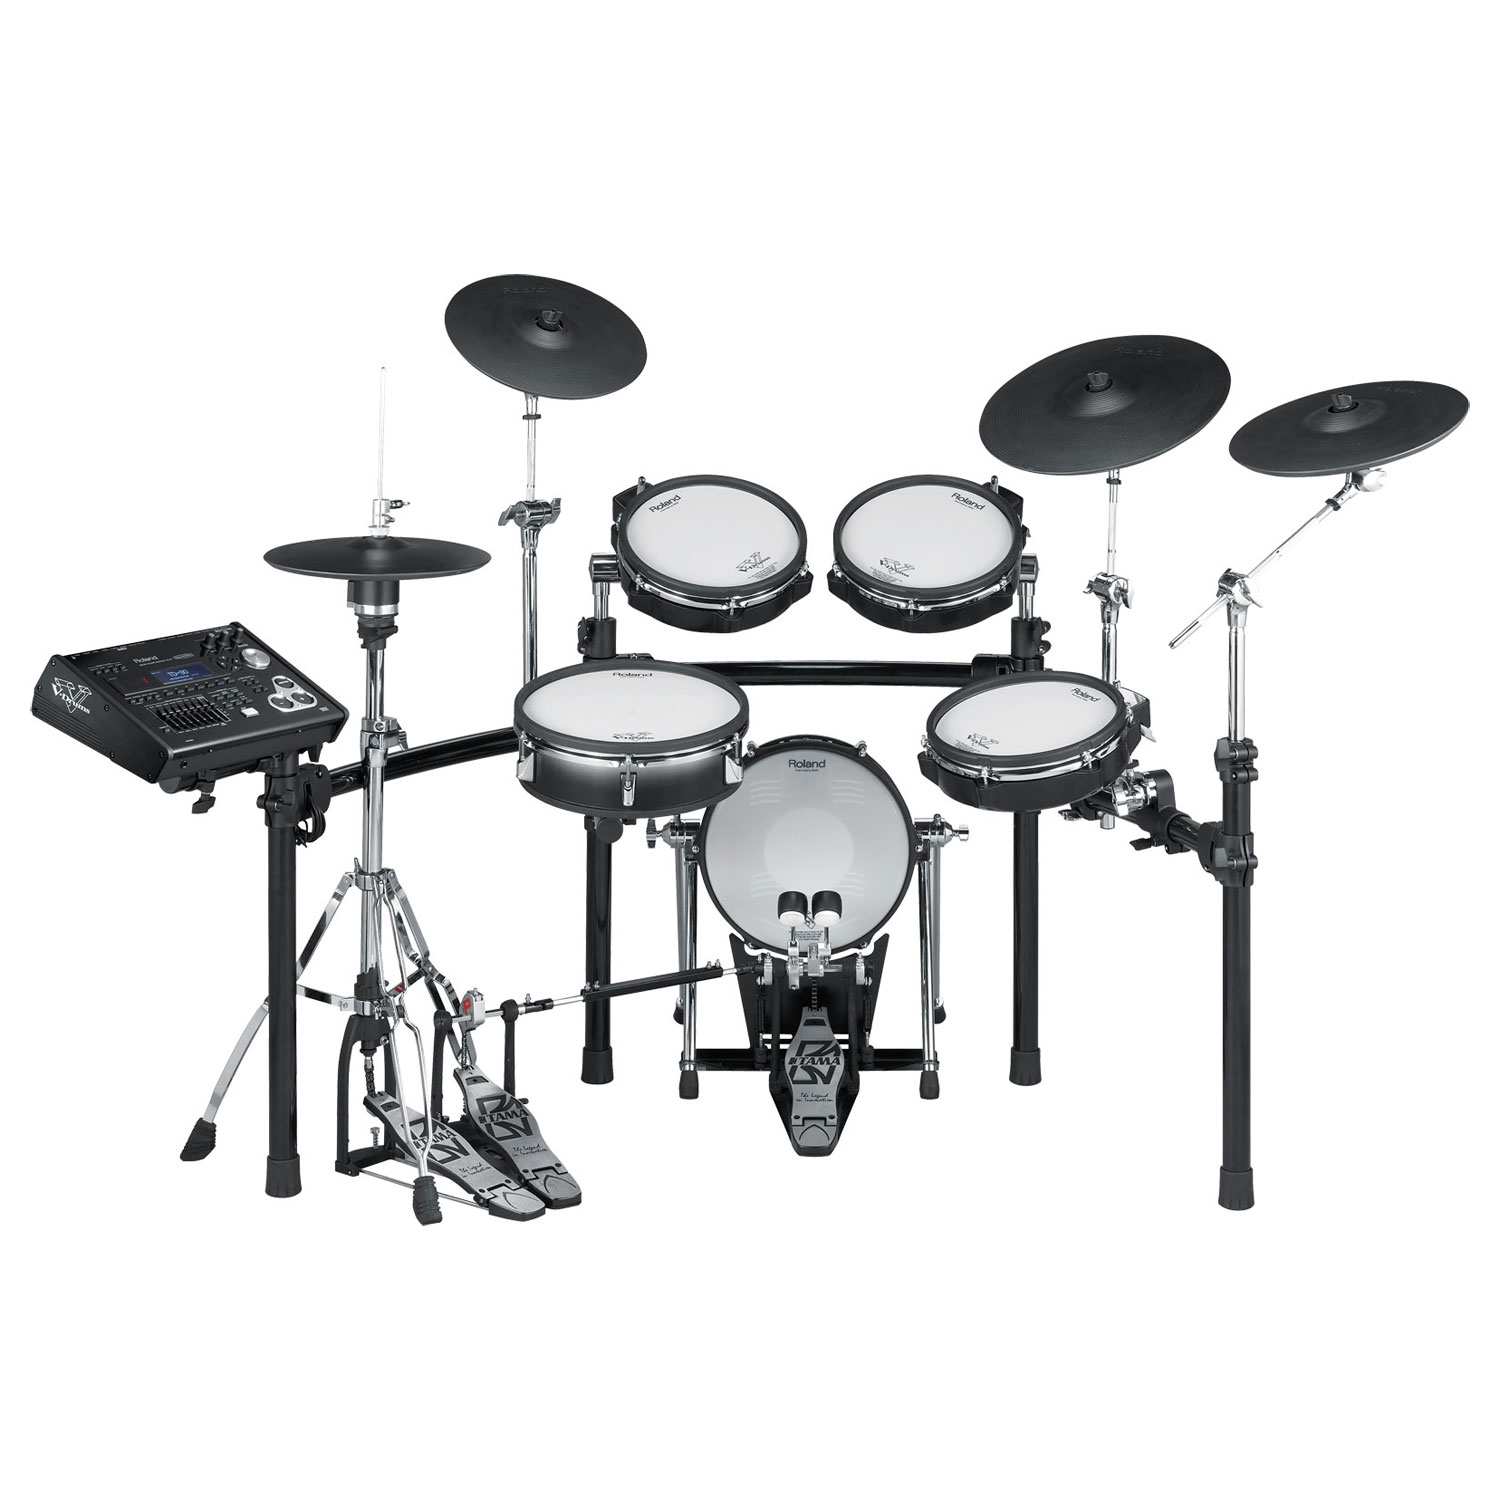 Roland V-Pro Series Electronic Drum Set